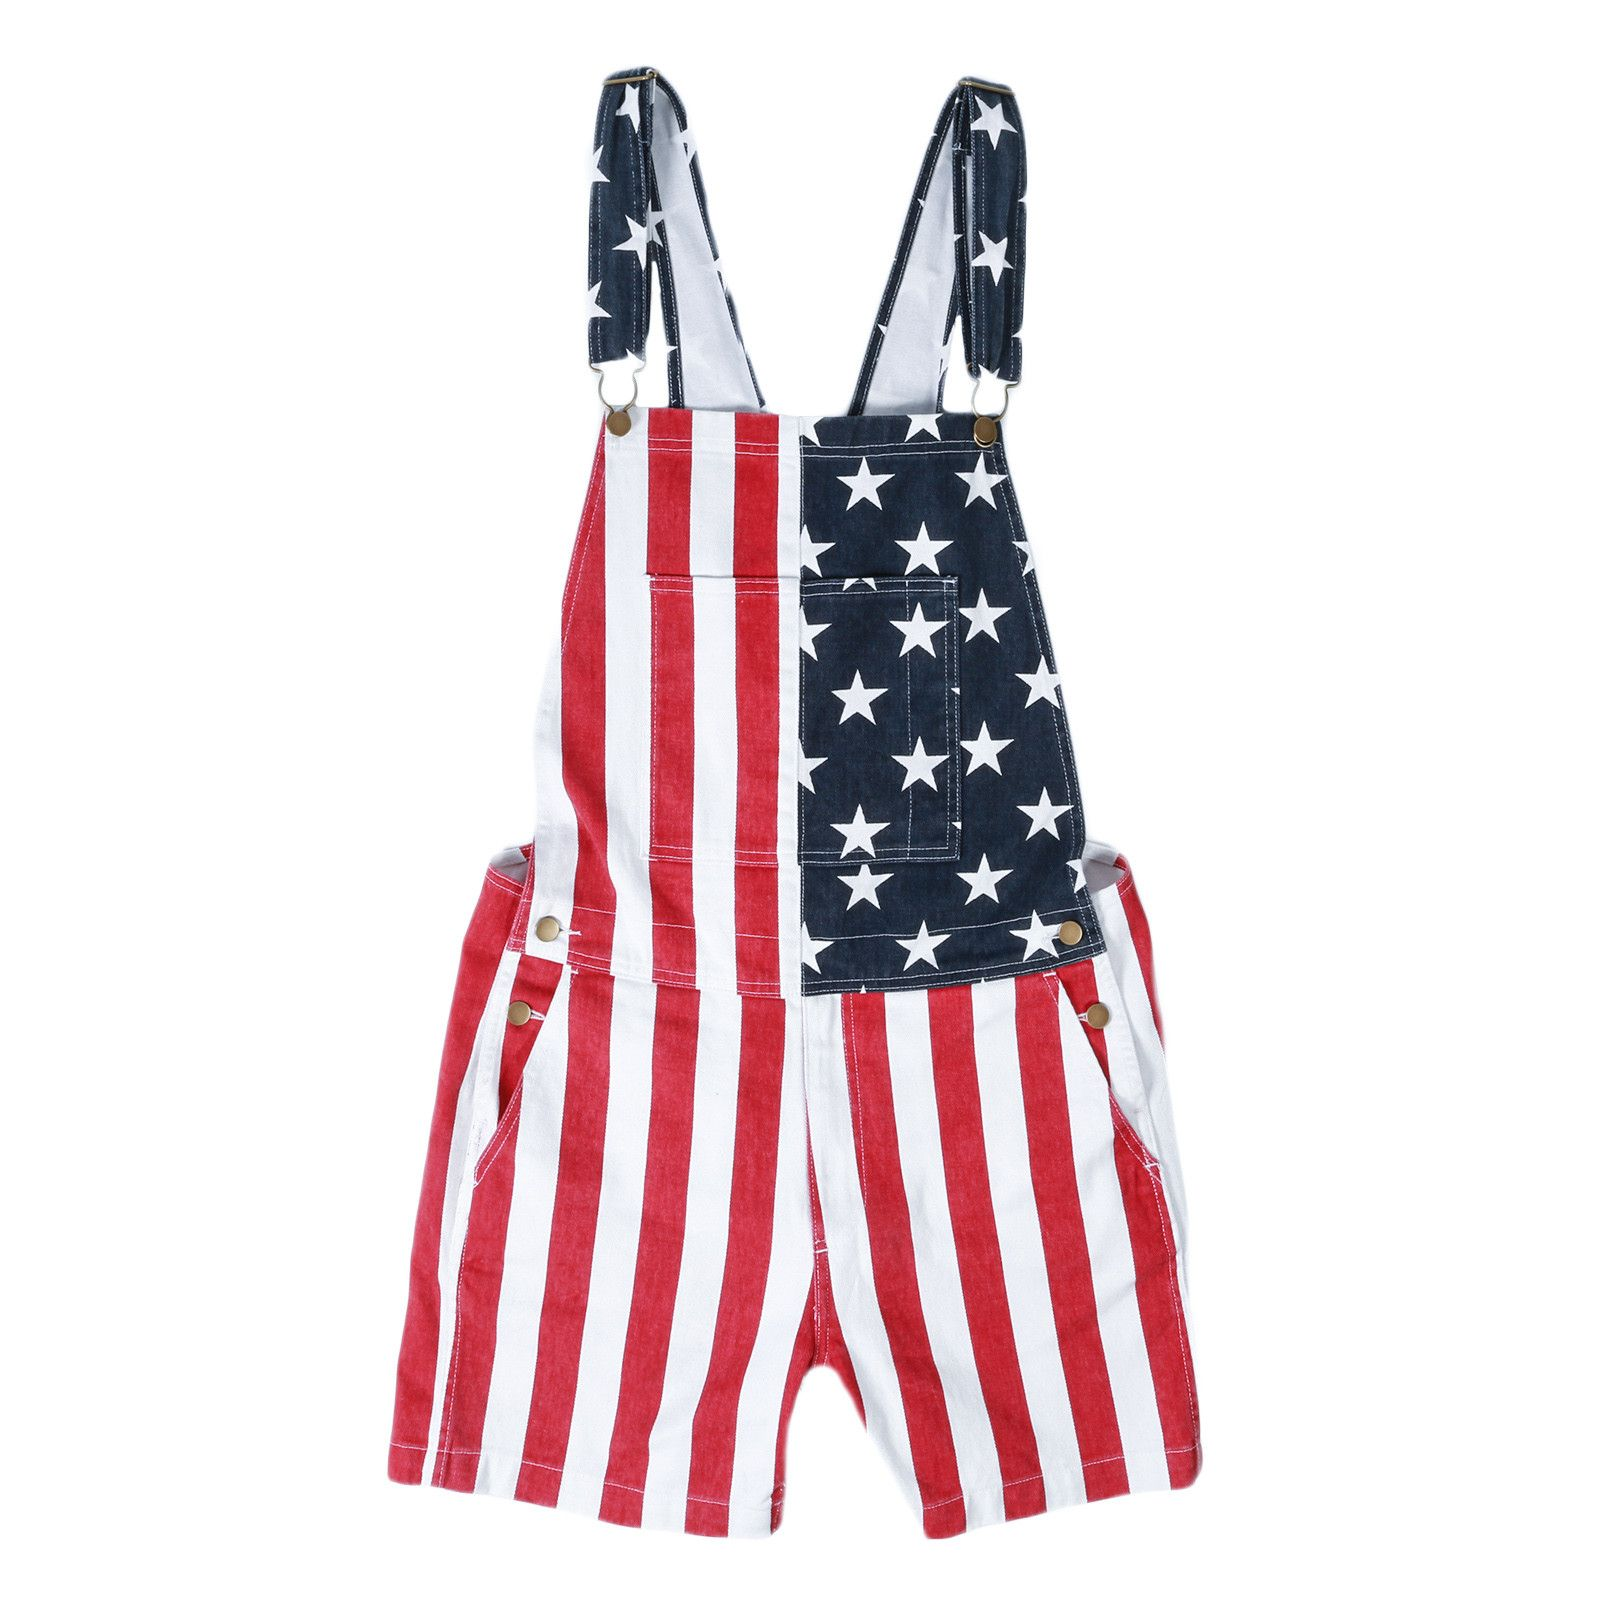 I got these for 4th of july next year chubbies com